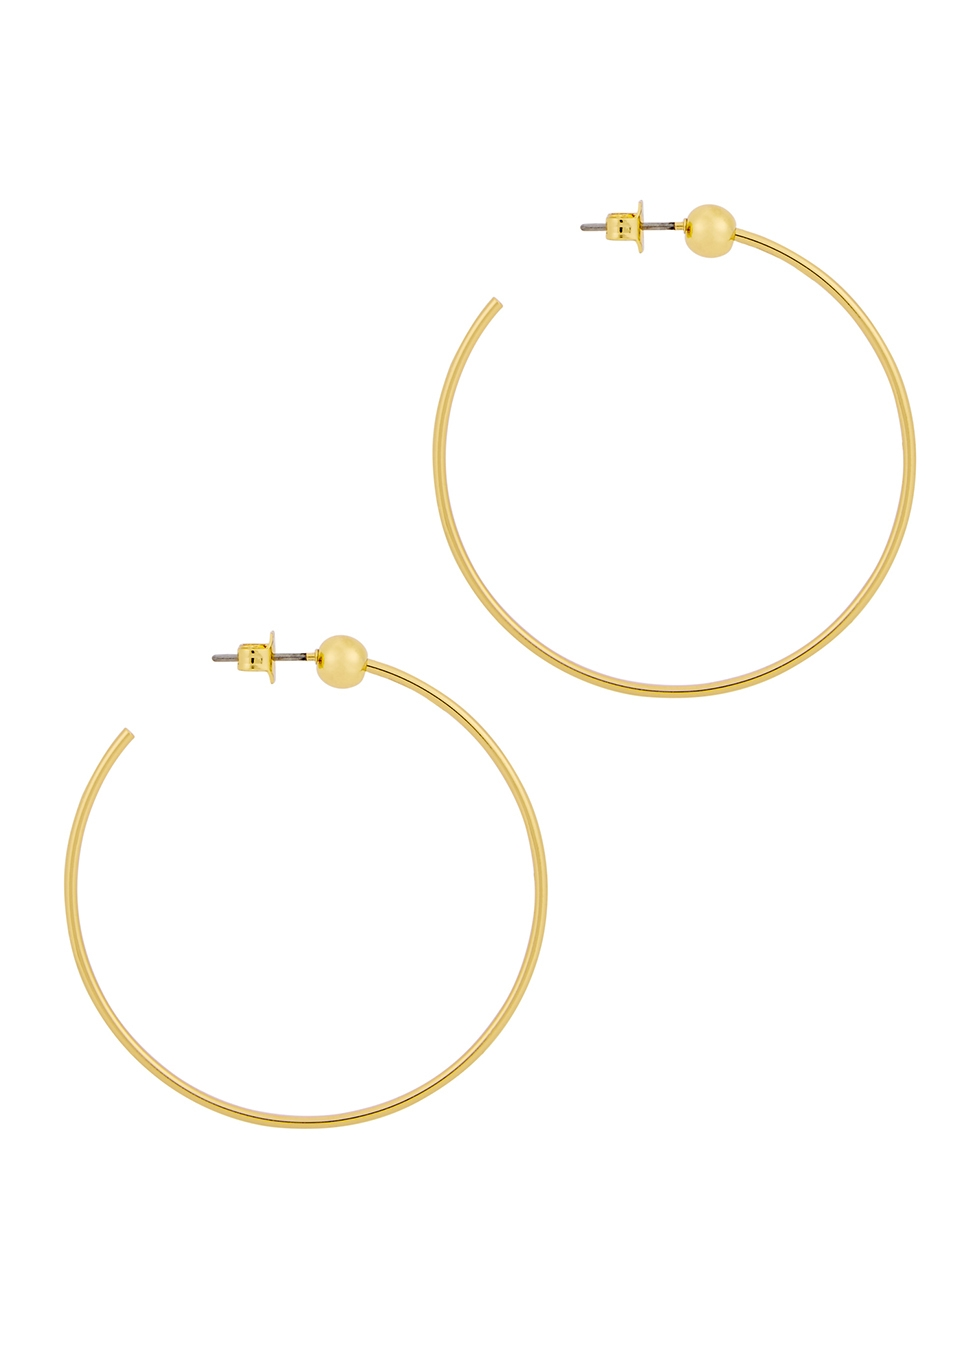 Icon small 14kt gold-dipped earrings - JENNY BIRD